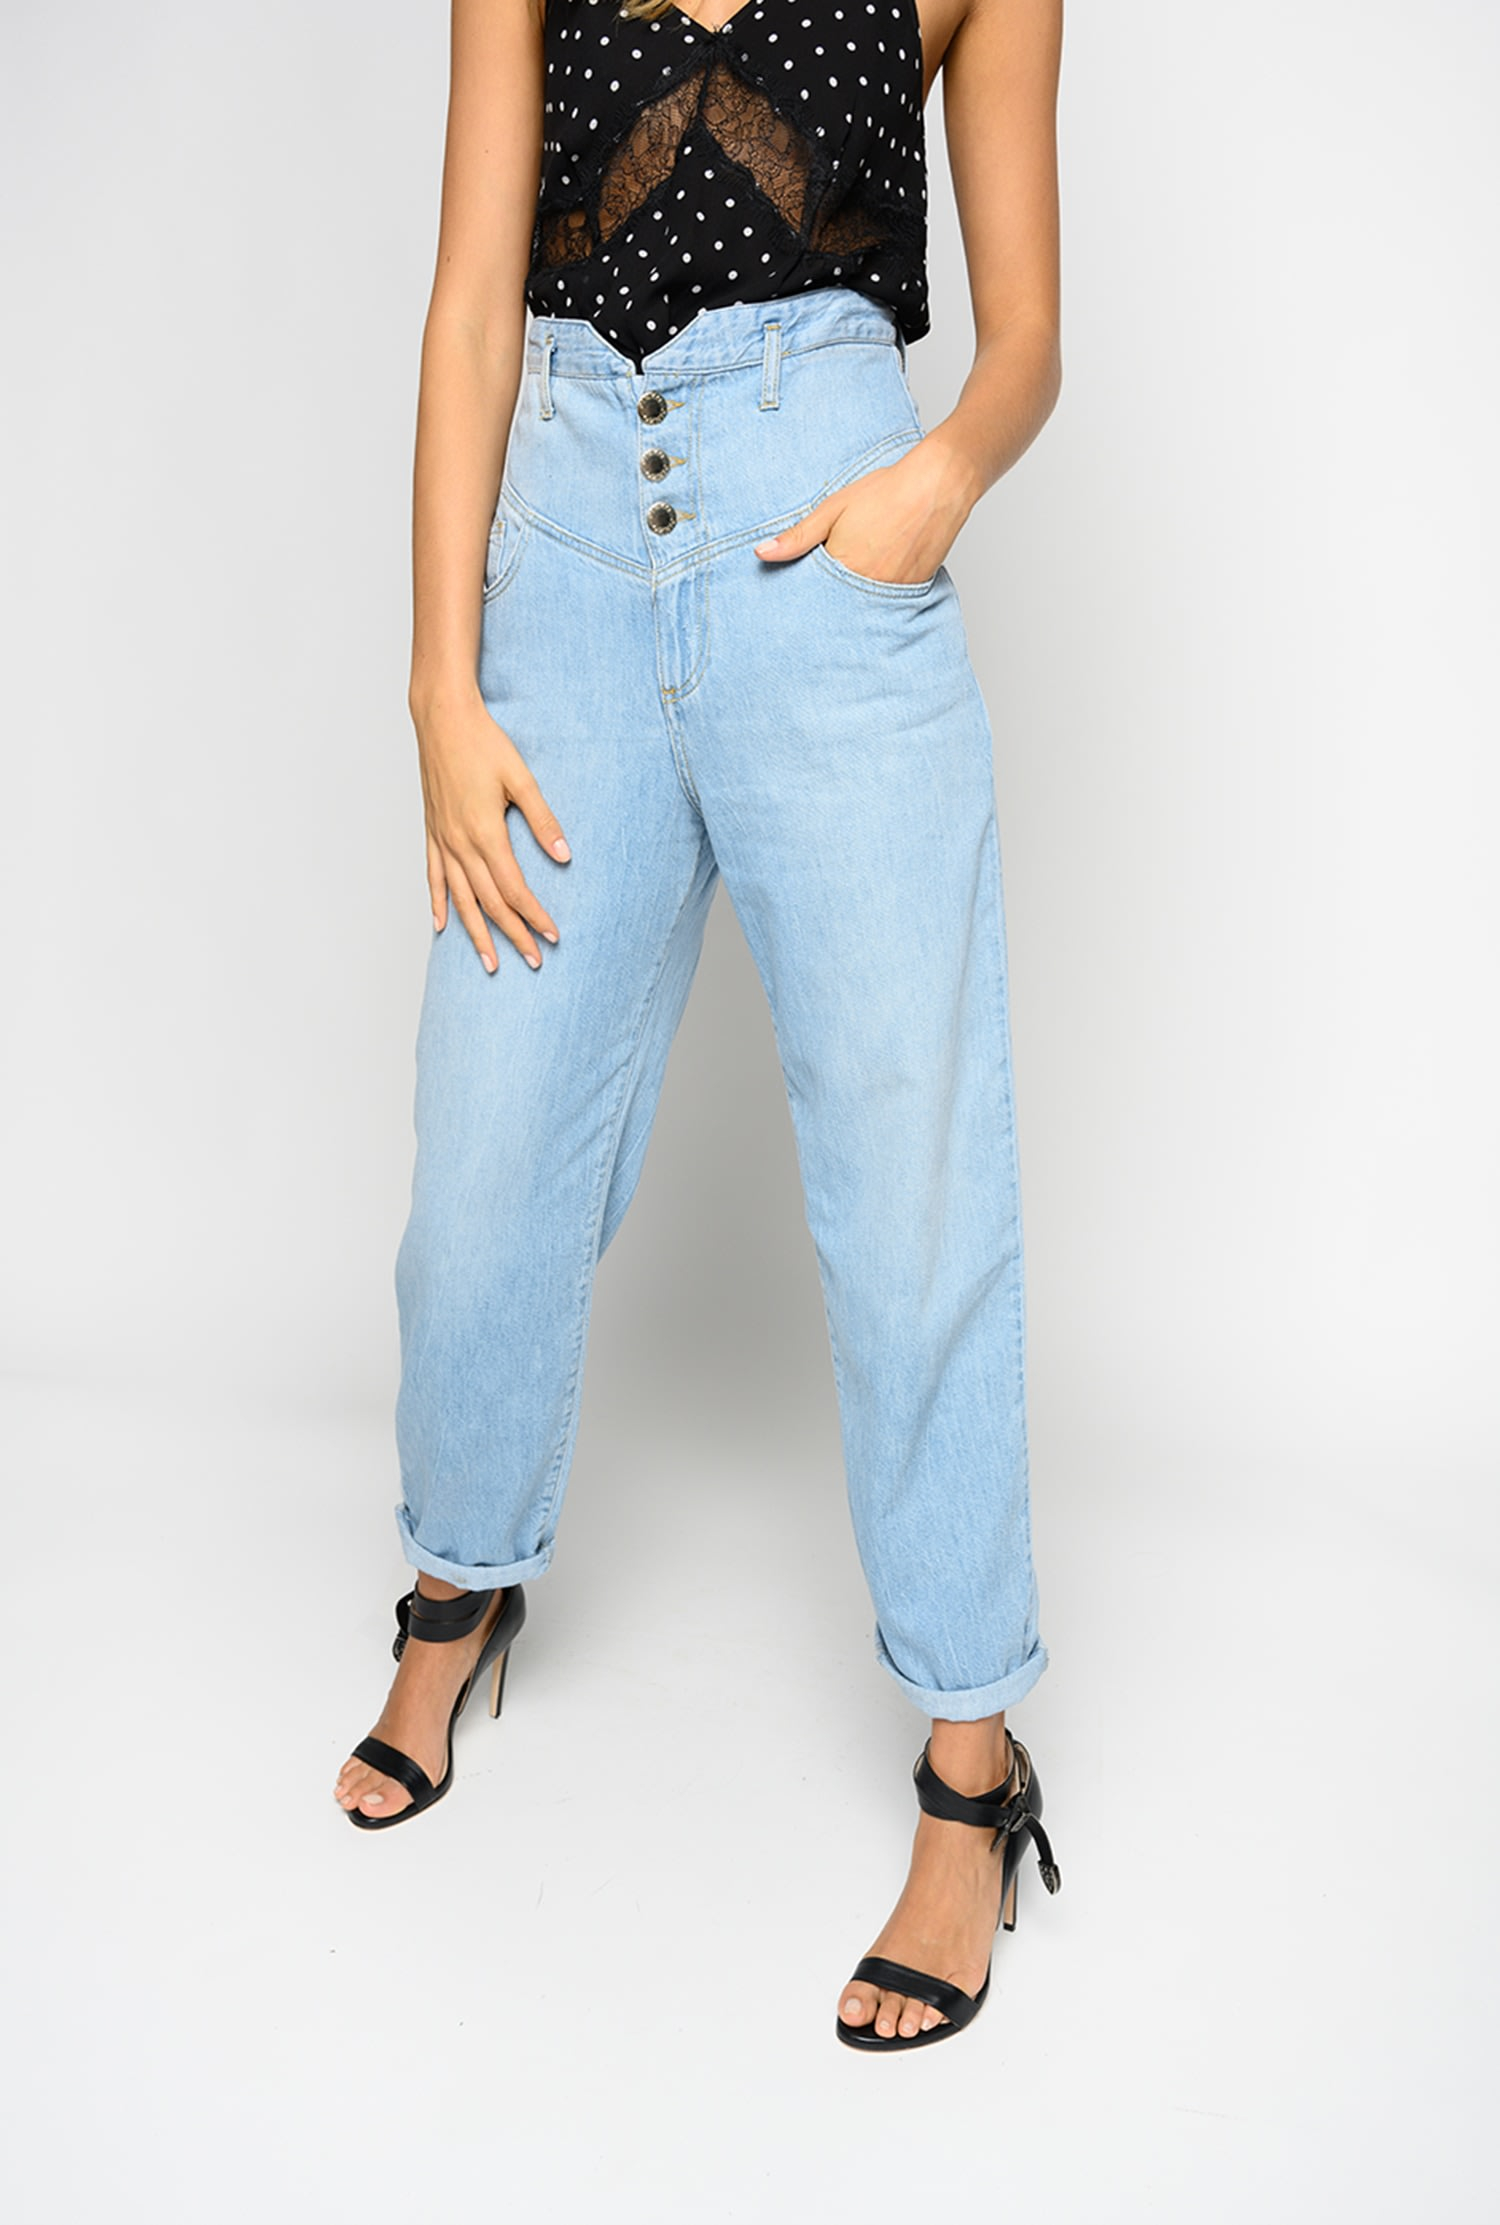 SHOPPING ON LINE PINKO JEANS CON VITA ALTA A BUSTIER CAROL 5 NEW COLLECTION WOMEN'S SPRING SUMMER 2020